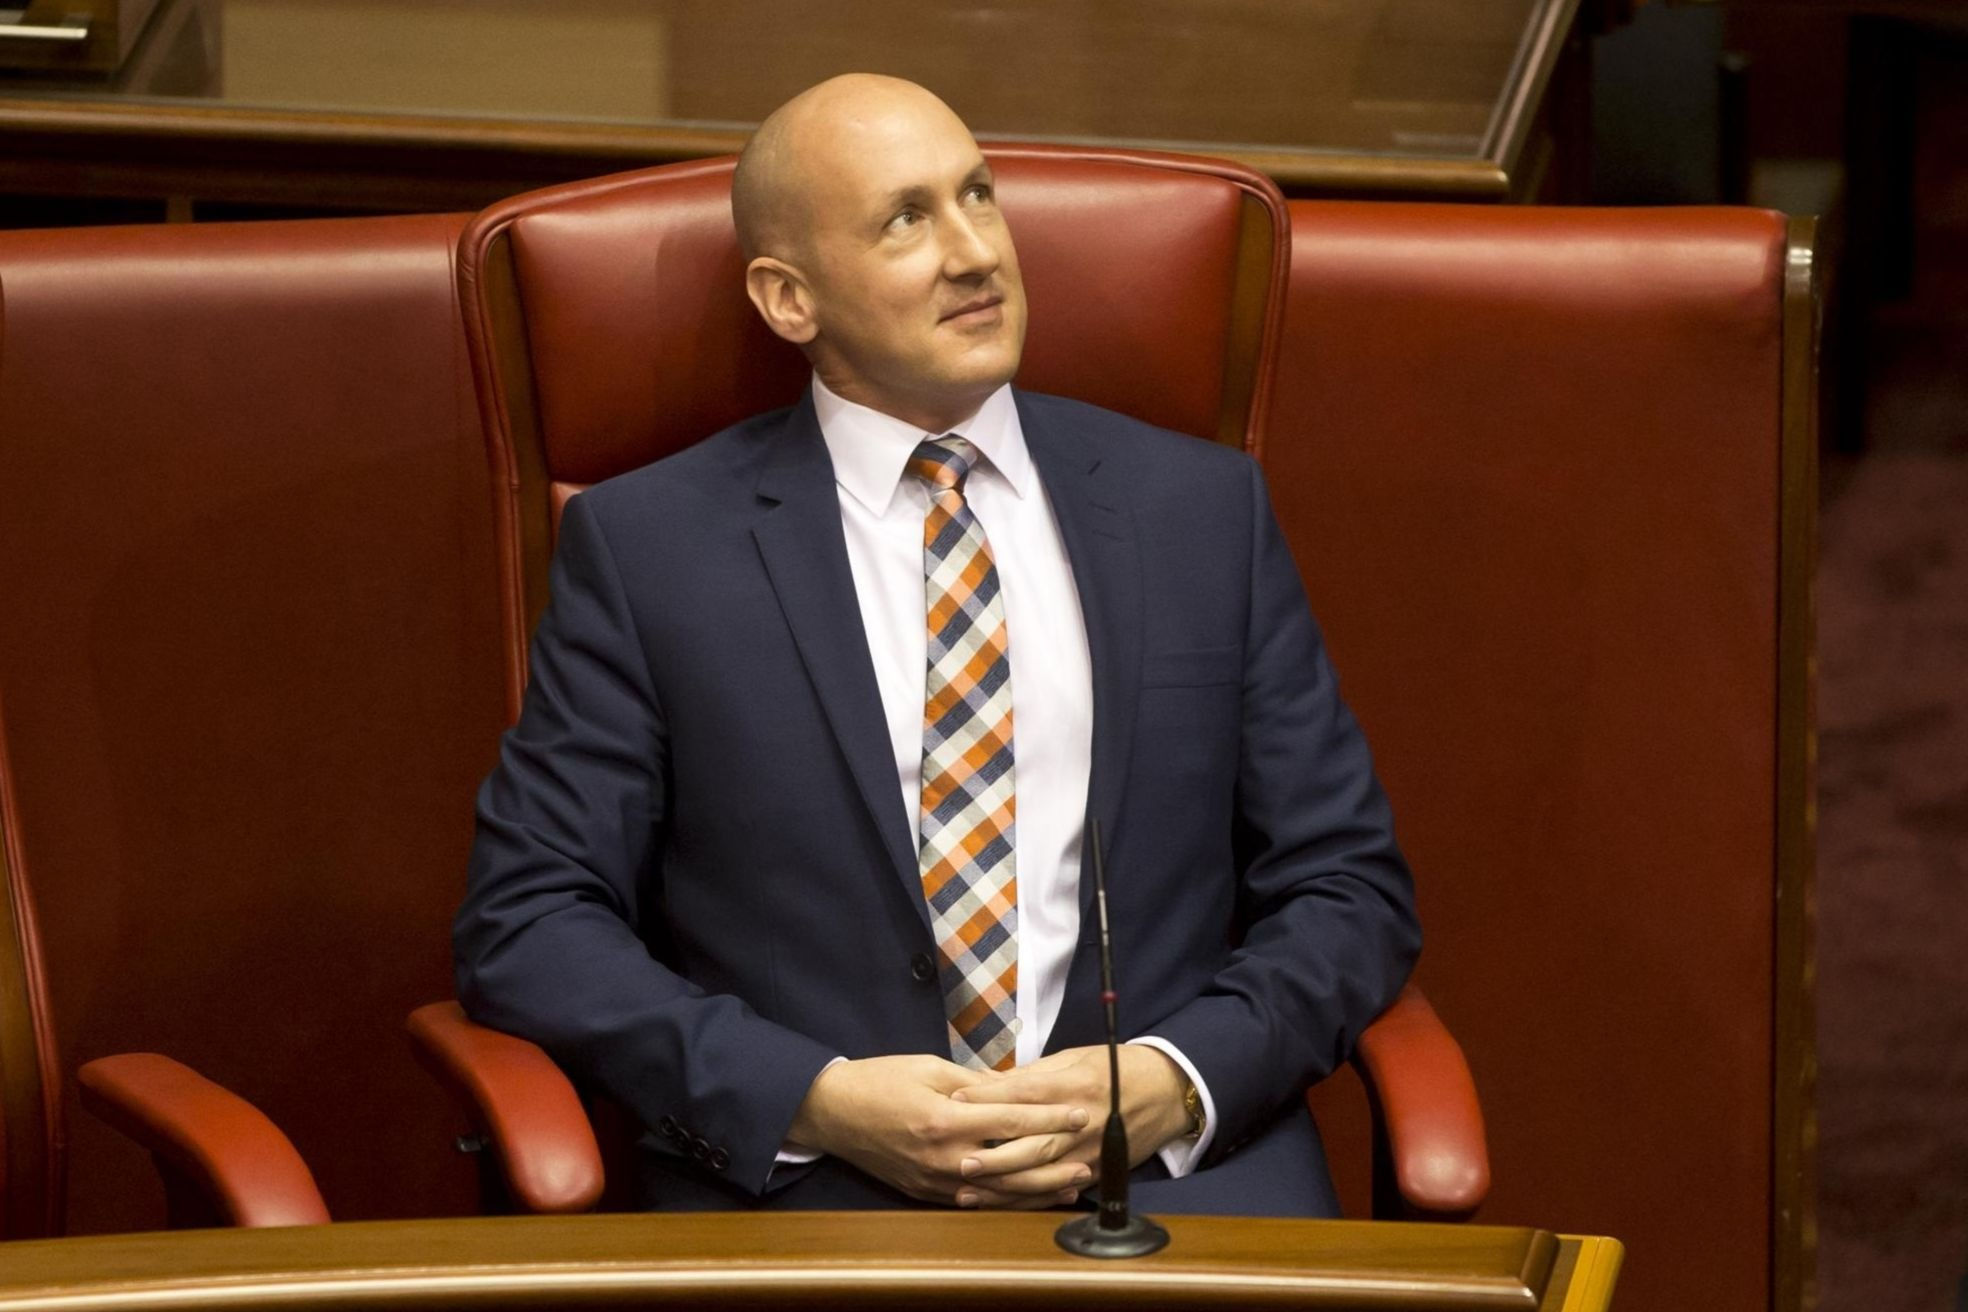 BREAKING: One Nation's Charles Smith will leave the party